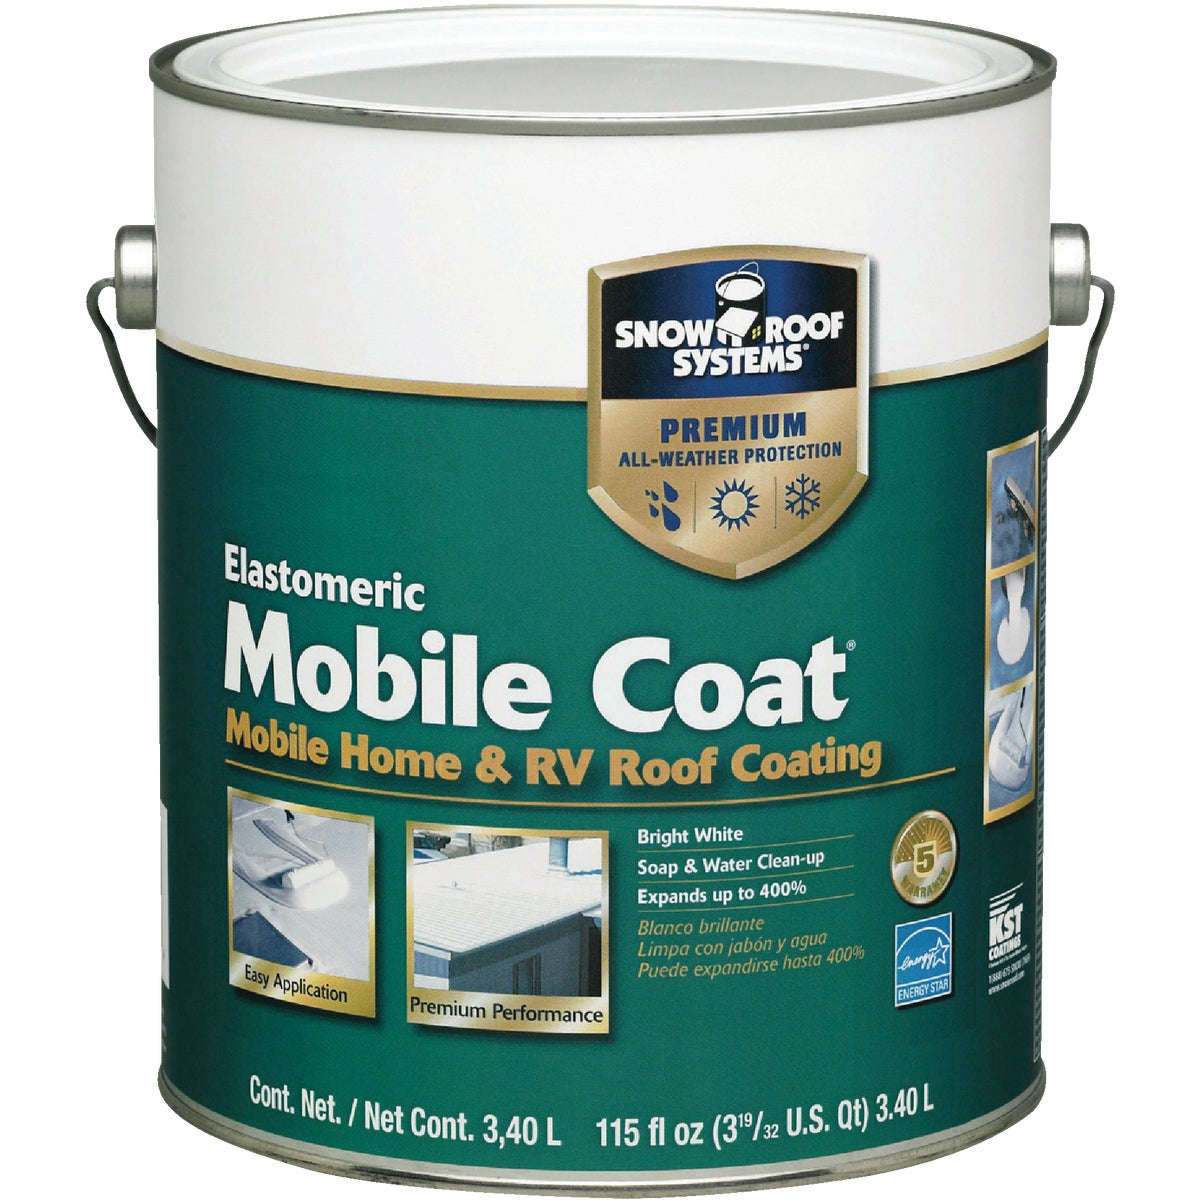 GAL MOBILE ROOF COATING - MC-1 by Snow Roof